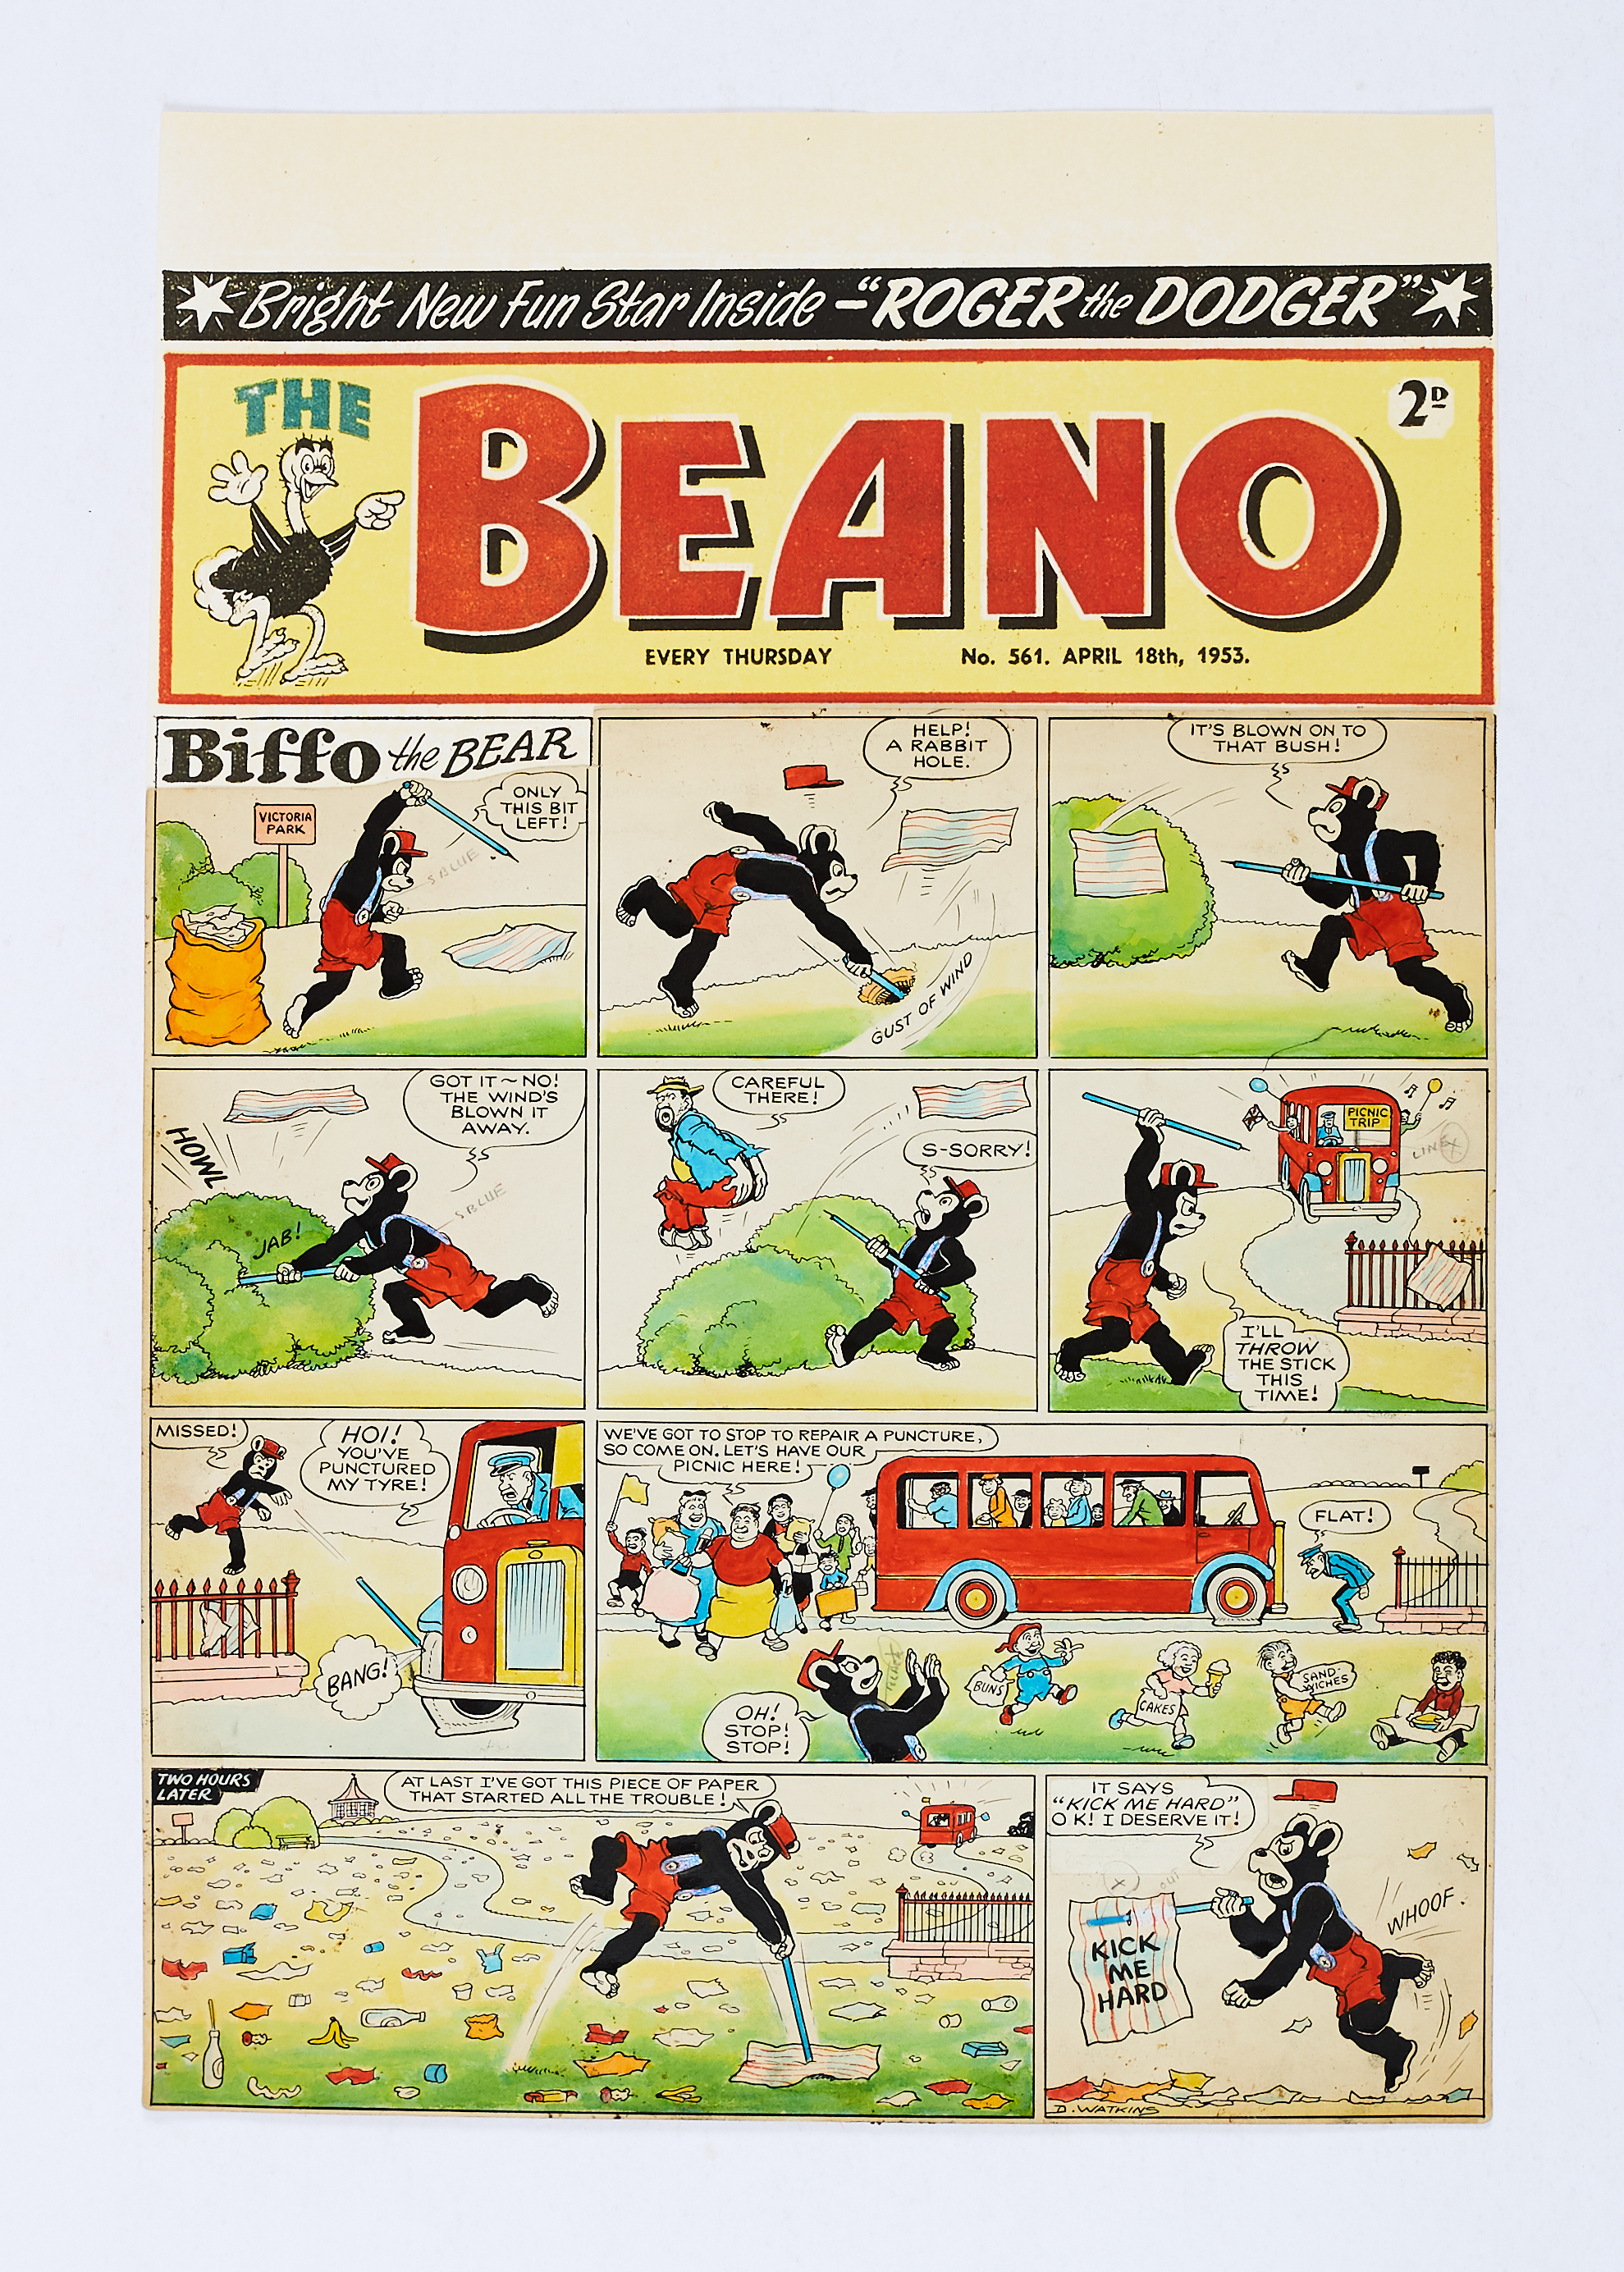 Lot 58 - The Beano/Biffo the Bear original front cover artwork (1953) drawn, painted and signed by Dudley